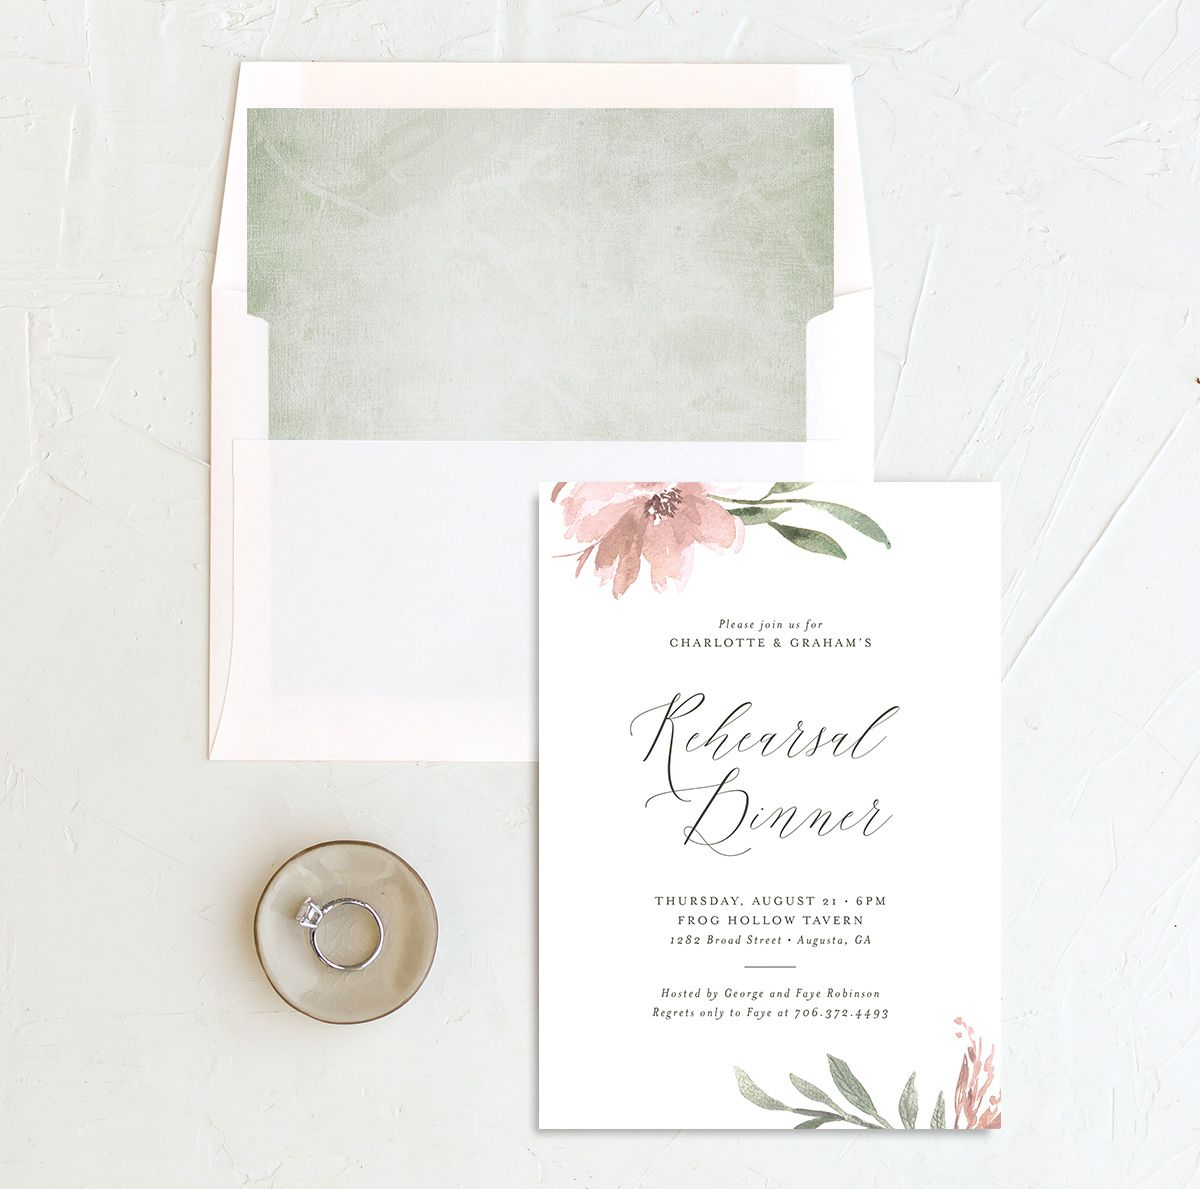 Muted floral rehearsal dinner invites in blush pink and envelope liner